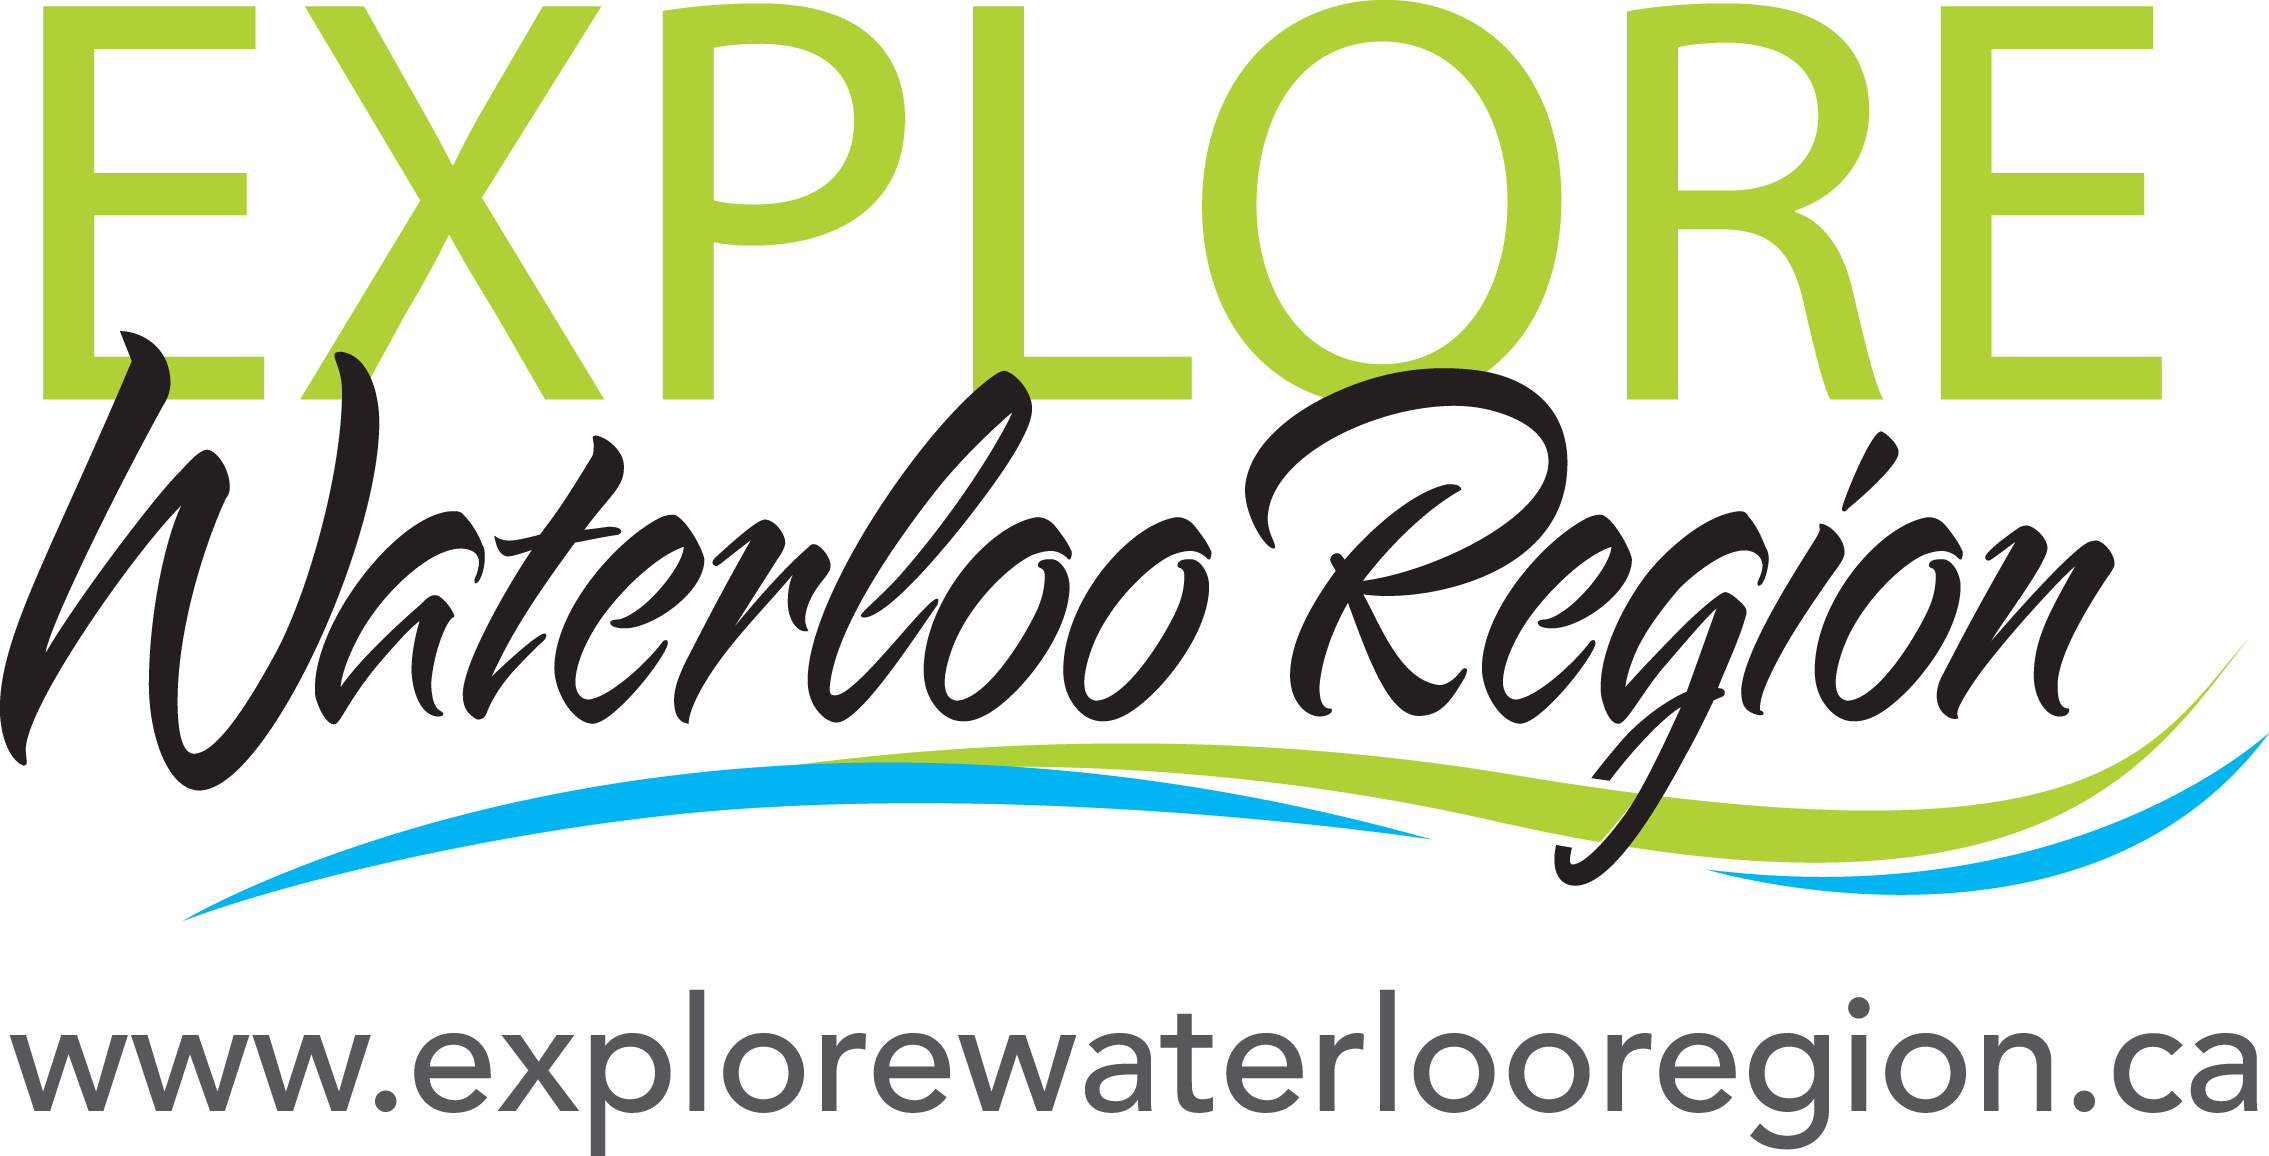 Explore Waterloo